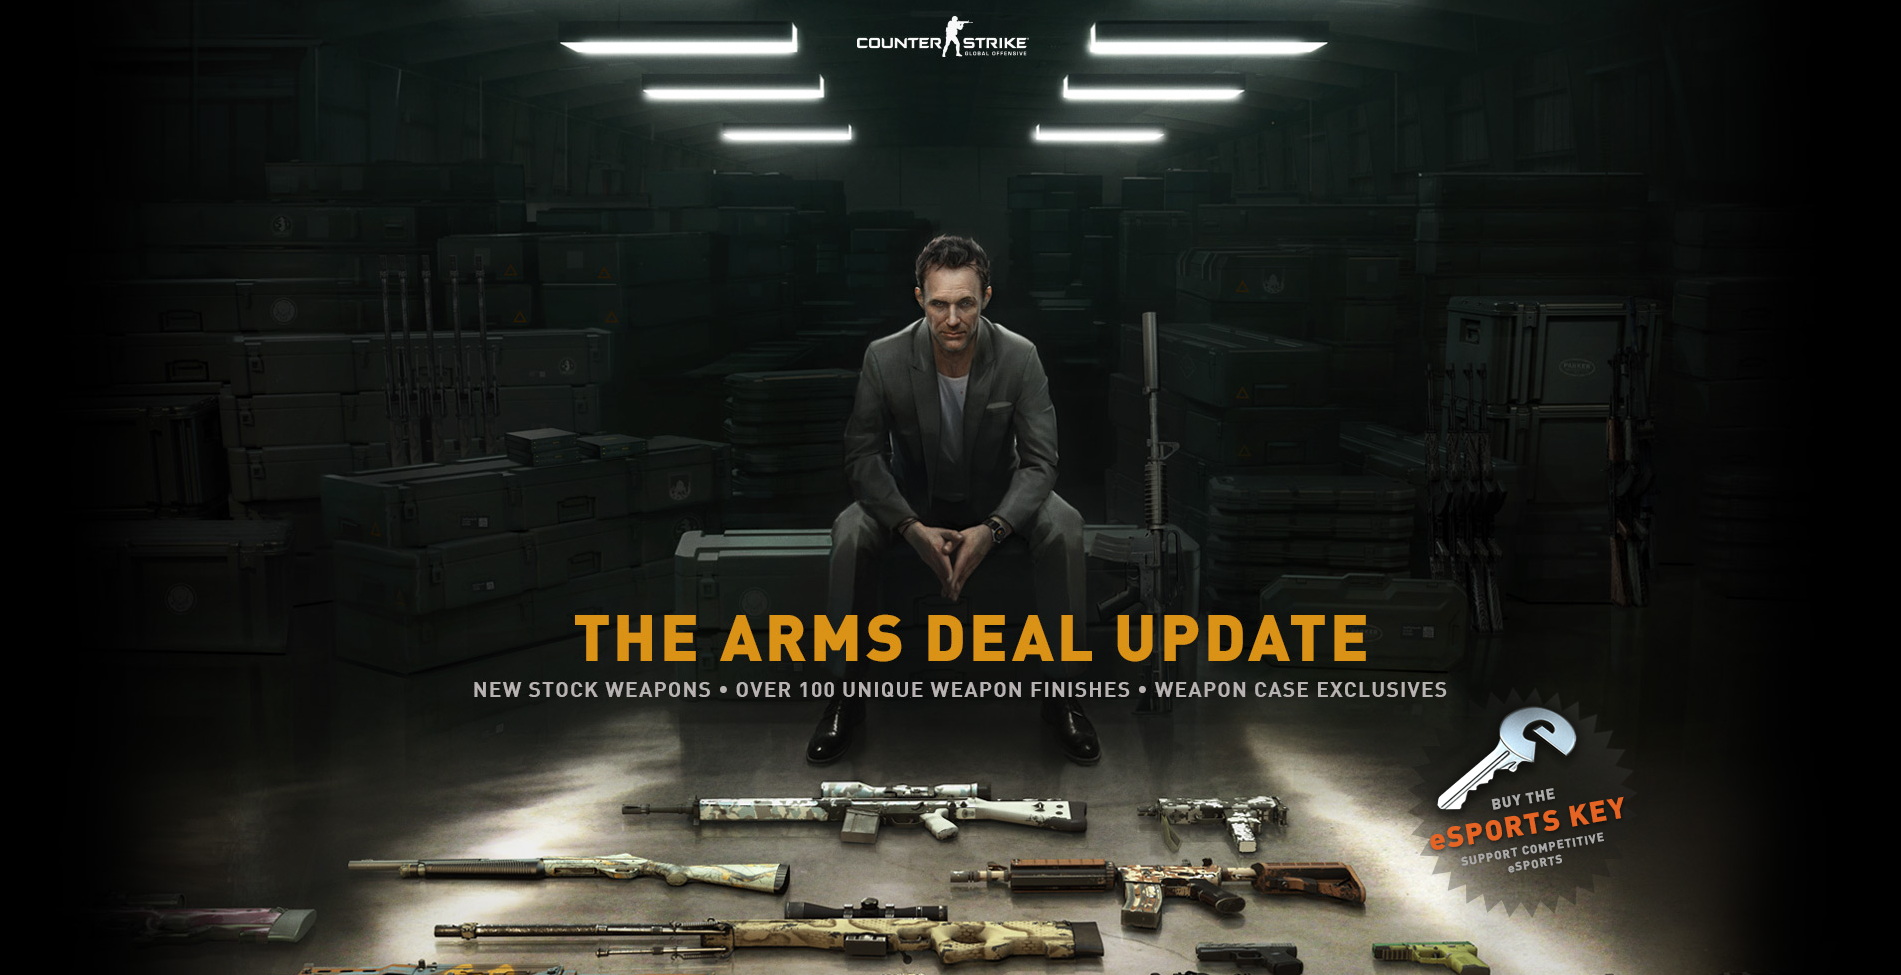 """A serious man sits on a large weapons crate, under which reads """"The Arms Deal Update: New Stock Weapons, Over 100 Unique Finishes, Weapon Case Exclusives. On the floor in front of the man are several rifles and pistols with various colored patterns on them. A picture of a key and call to action reads: Buy the esports key support competitive esports. A logo at the top of the picture reads Counter Strike Global Offensive"""